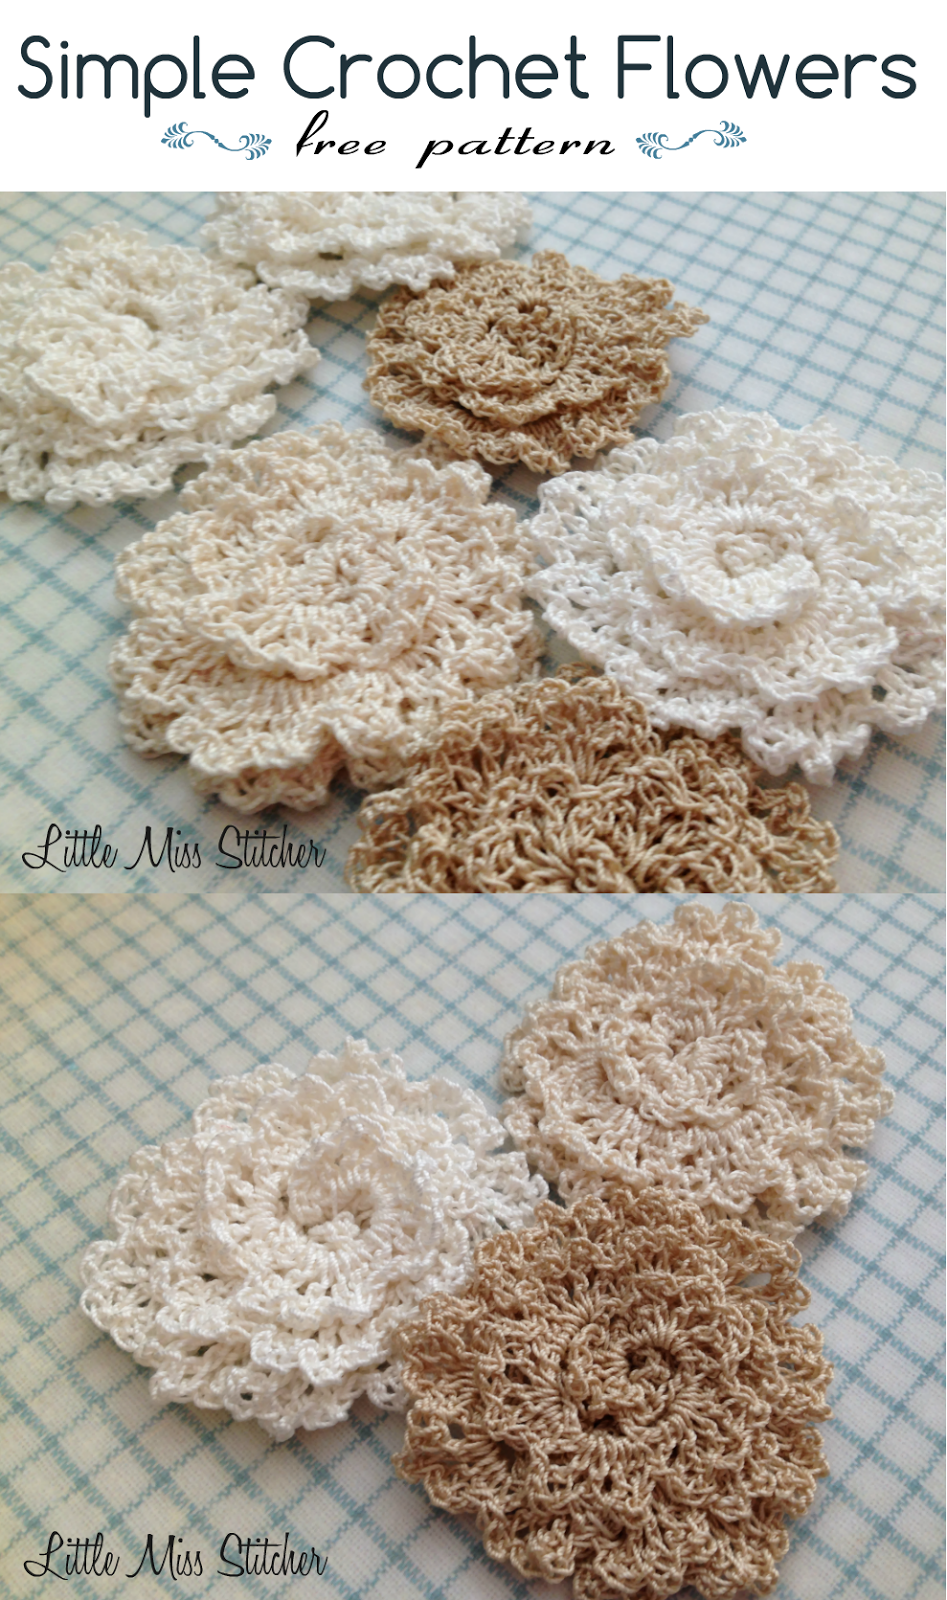 Simple Crochet Flower Pattern Free : Little Miss Stitcher: Simple Crochet Flower Free Pattern